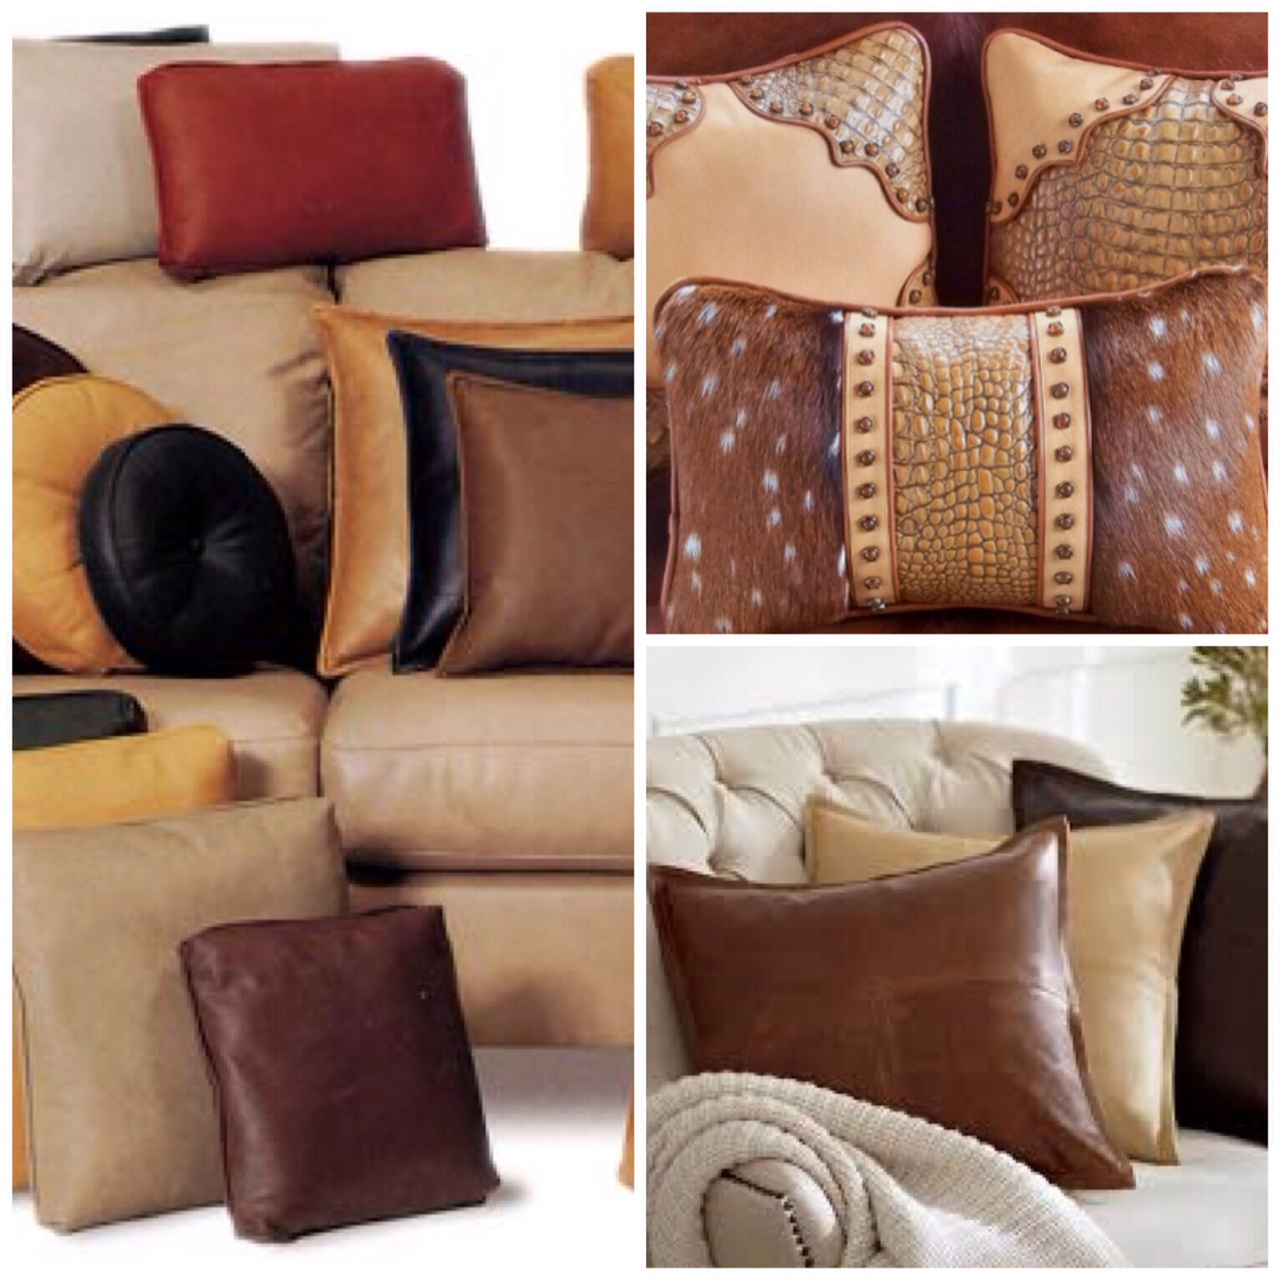 Throw Pillows For Leather Couch : Leather Throw Pillows & Accent Pillows: 20-50% Off Retail